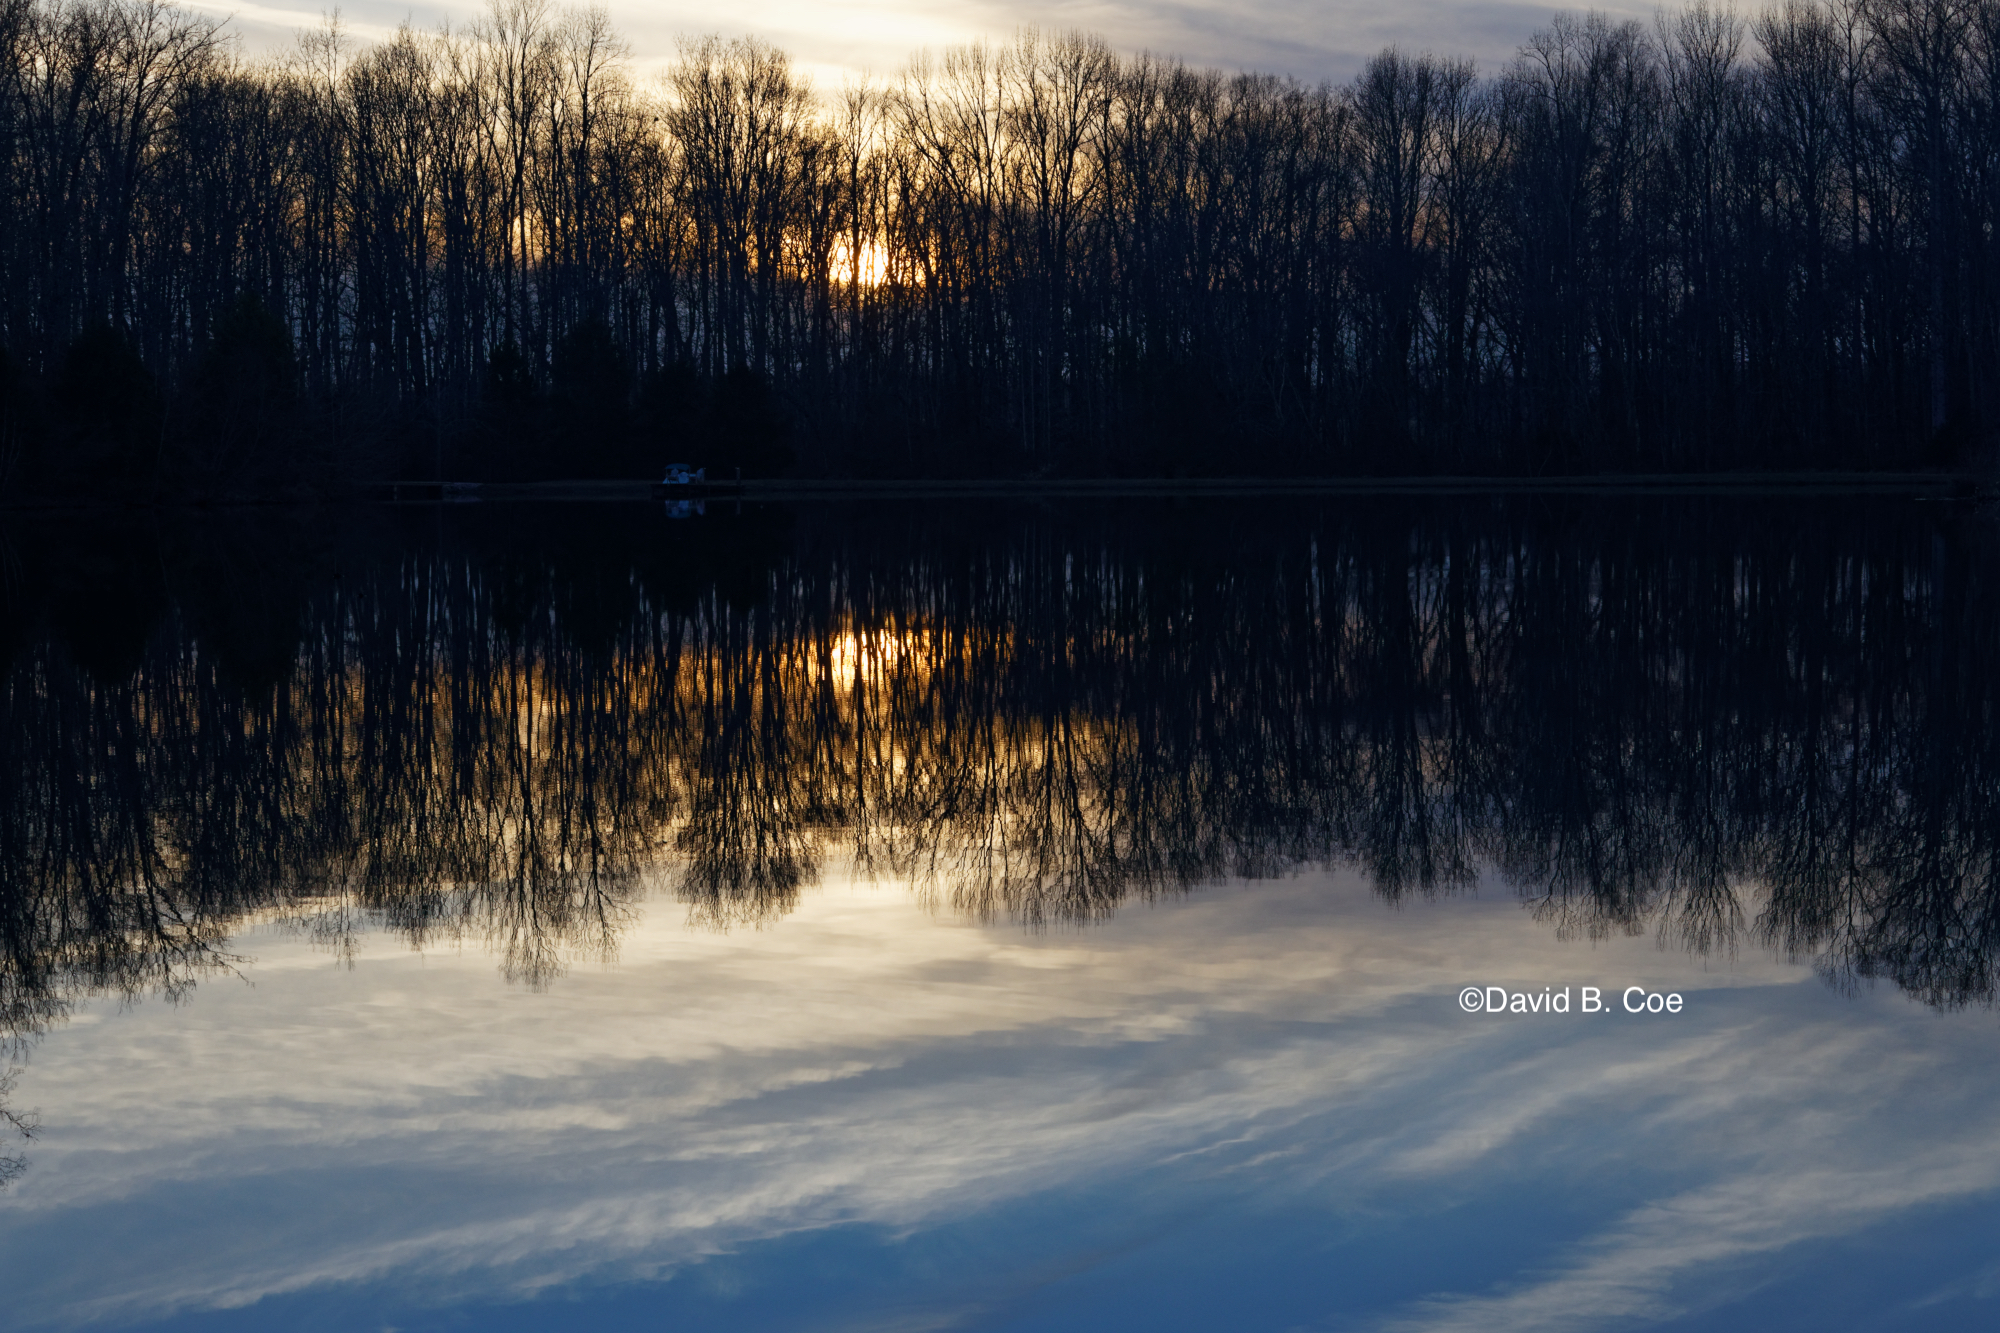 Twilight Pond Reflection, by David B. Coe